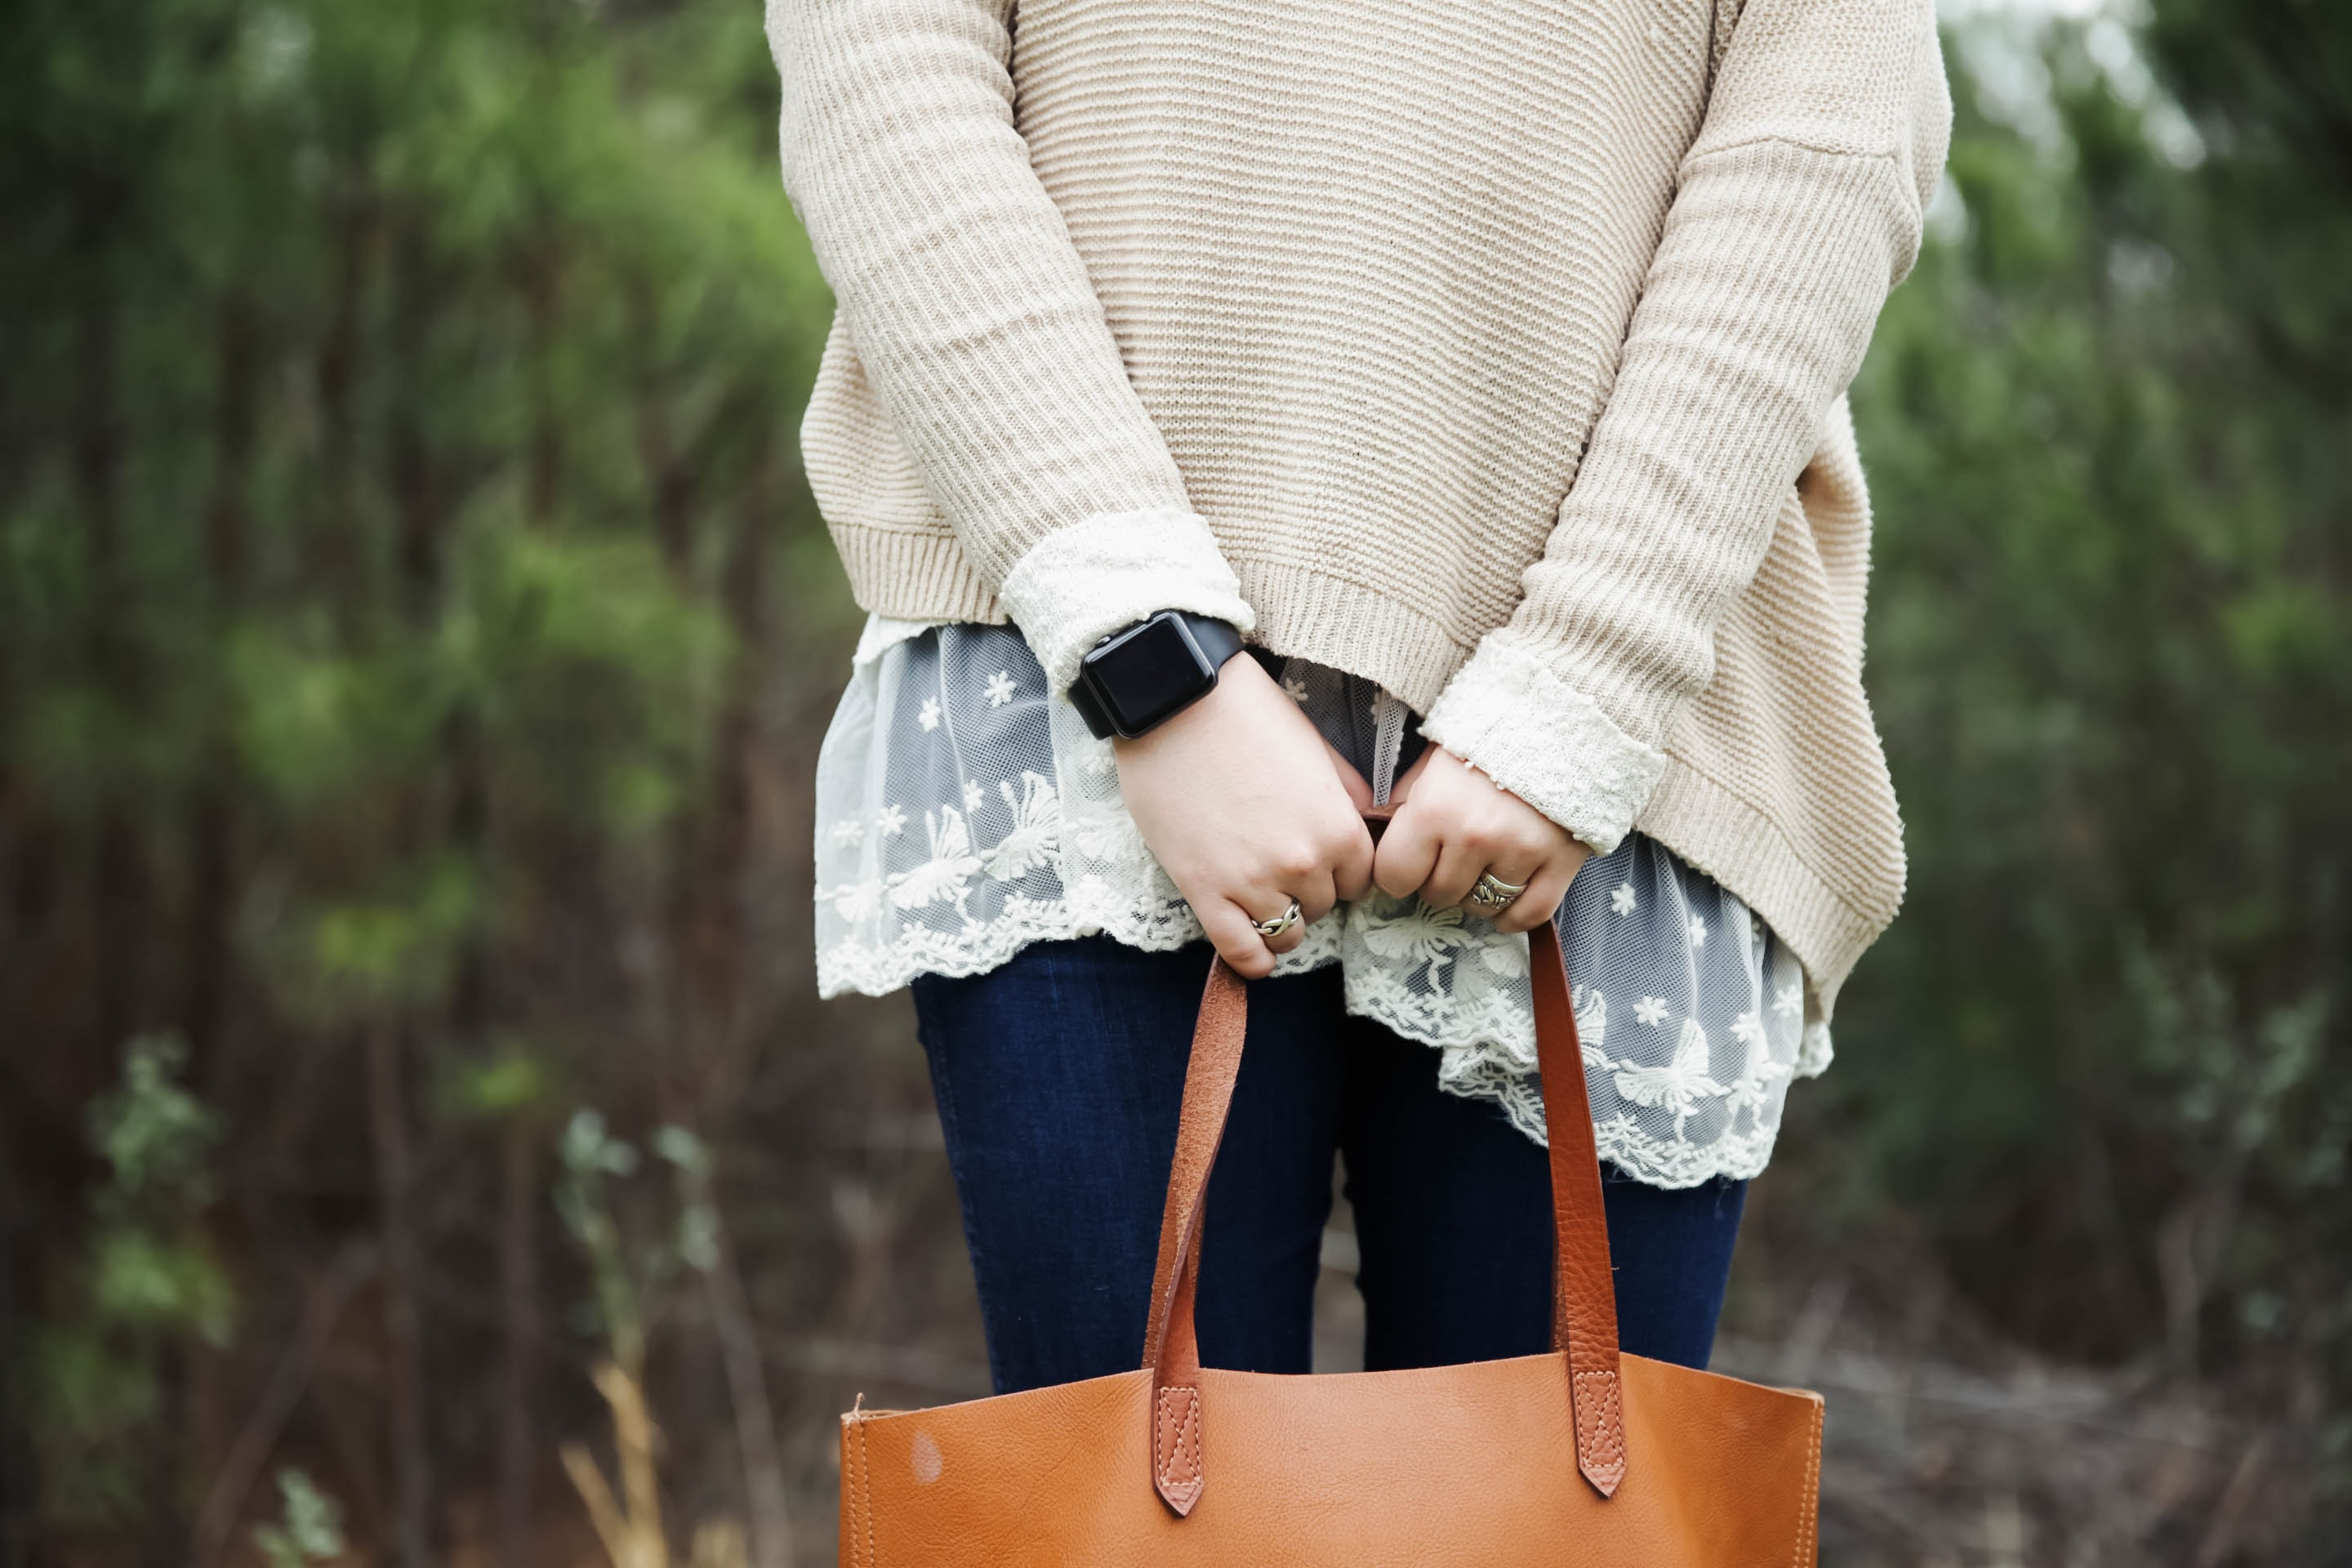 woman standing holding a brown leather tote bag